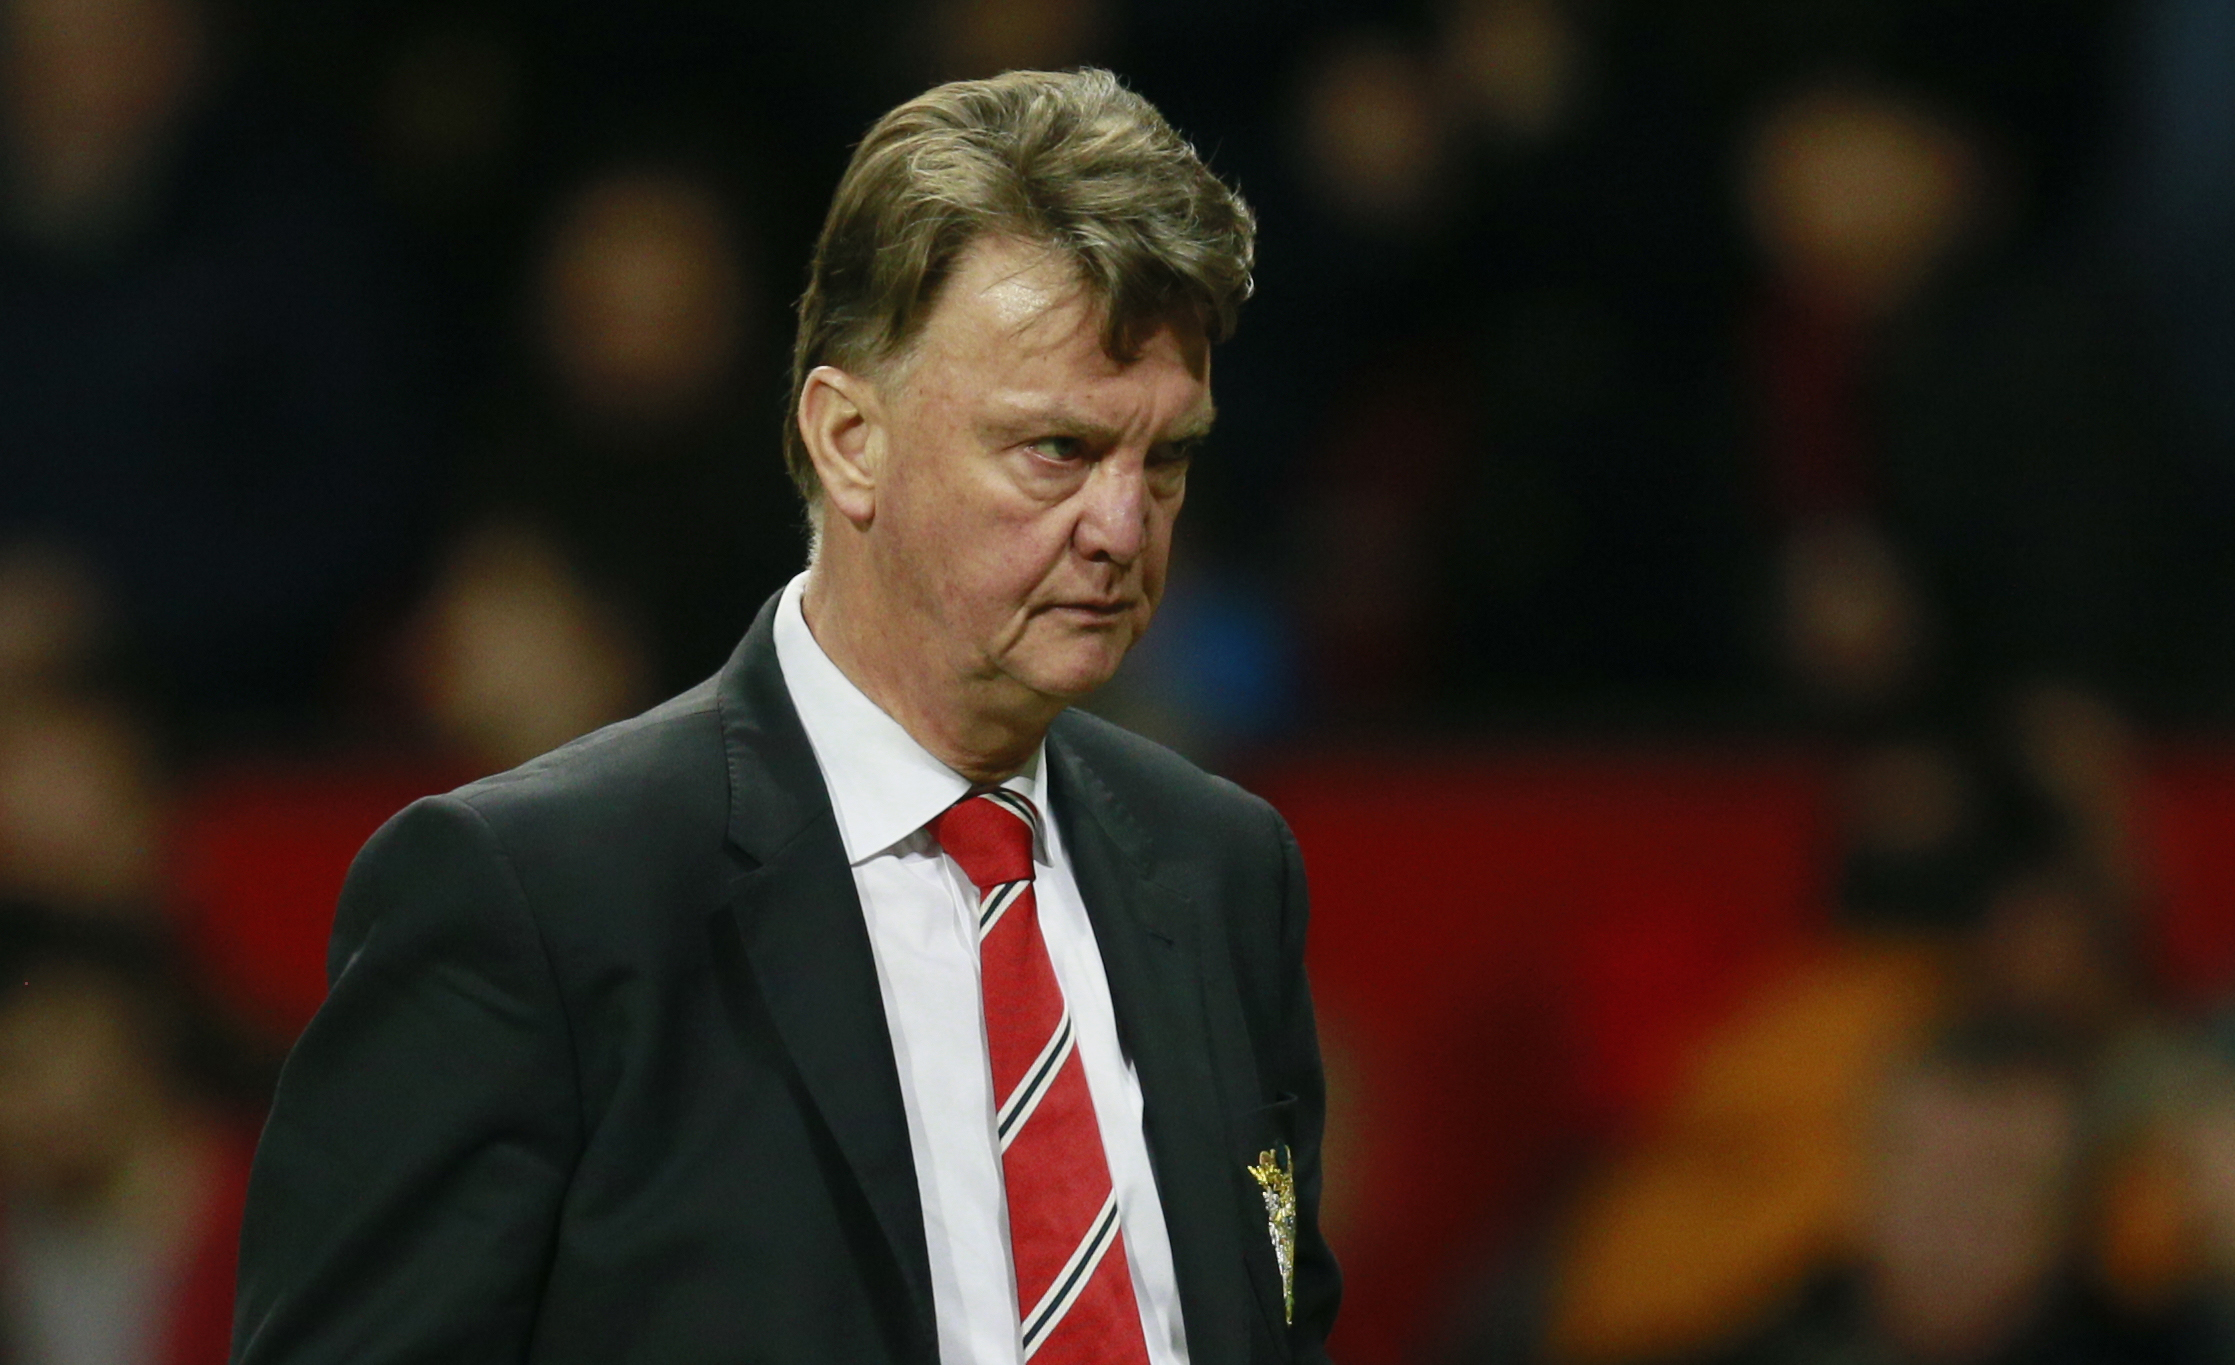 Manchester United's manager Louis van Gaal looks dejected after Barclays Premier League game against Chelsea at Old Traffor, on Monday, December 29, 2015. Photo: Reuters